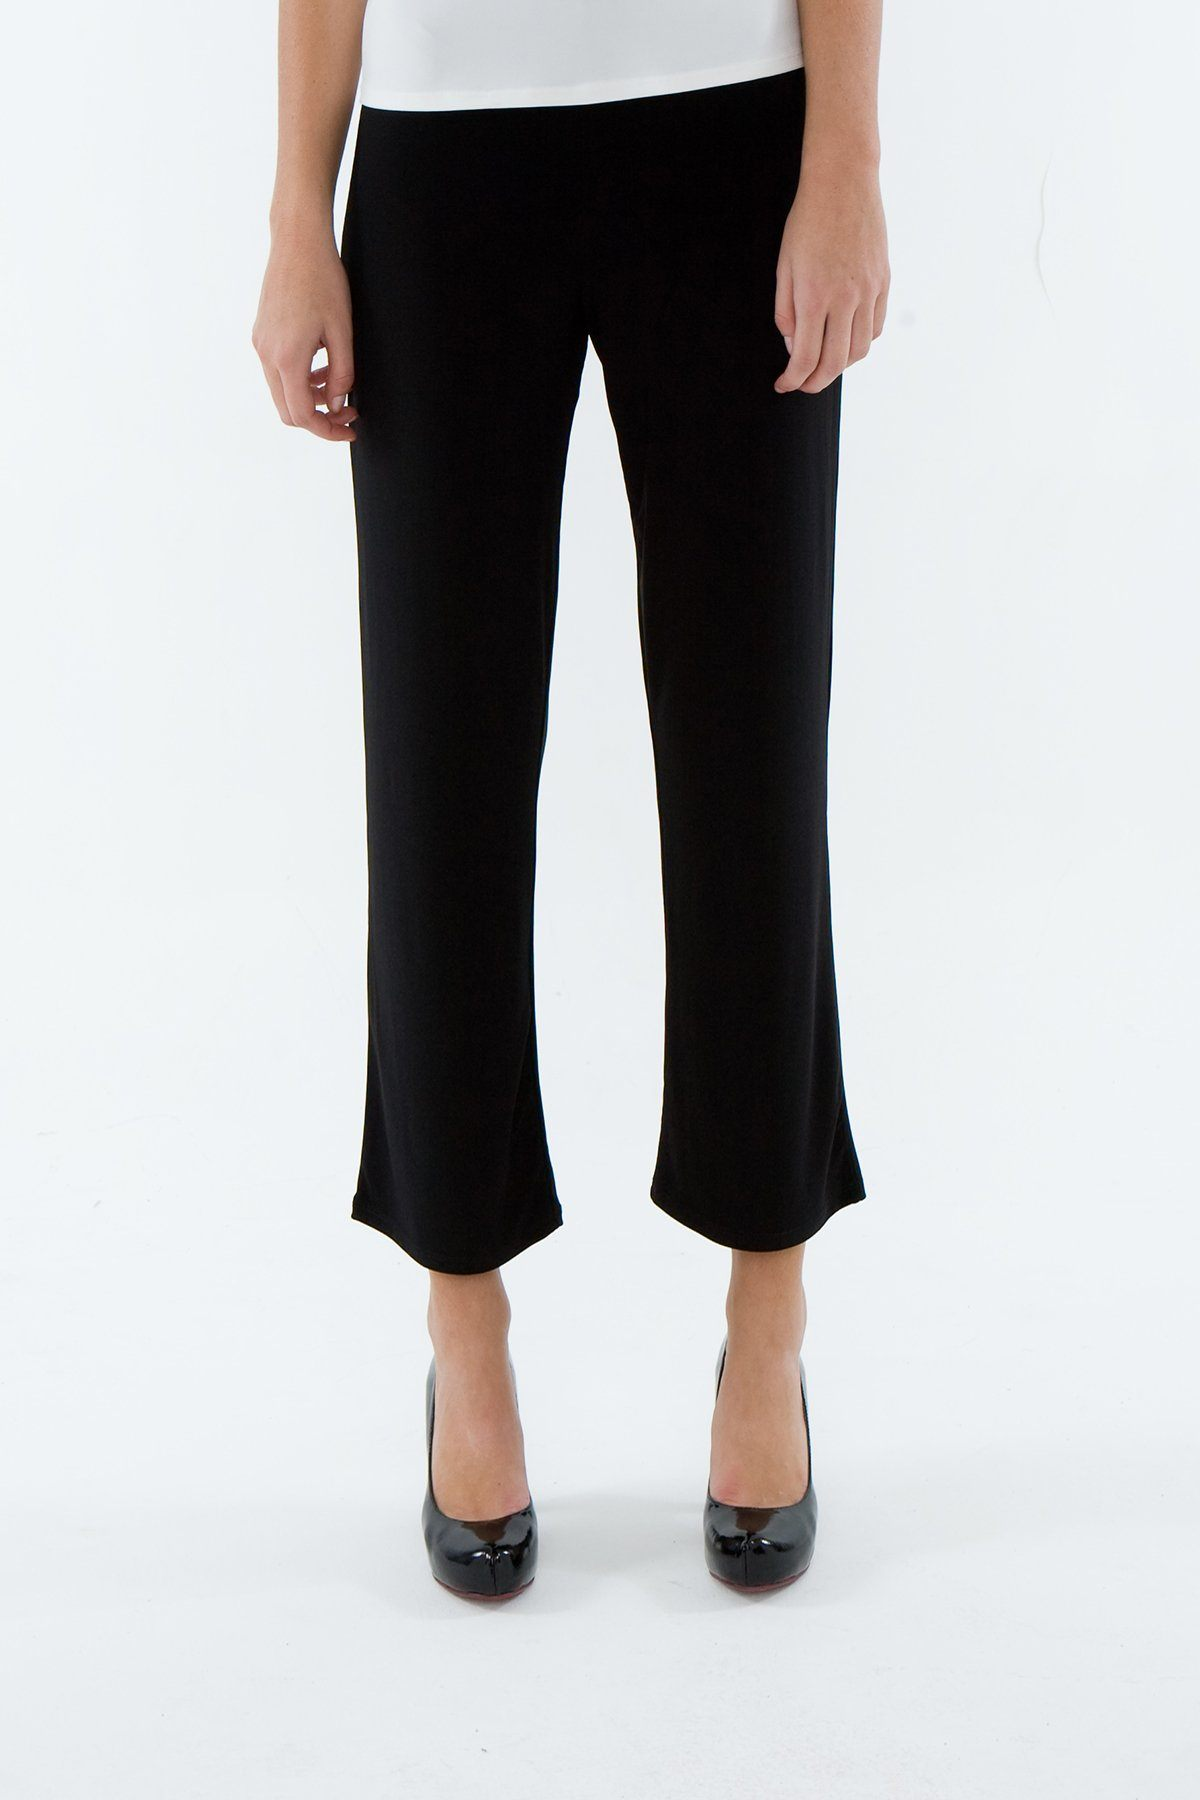 ROSARINI Black Capri Cropped Pants